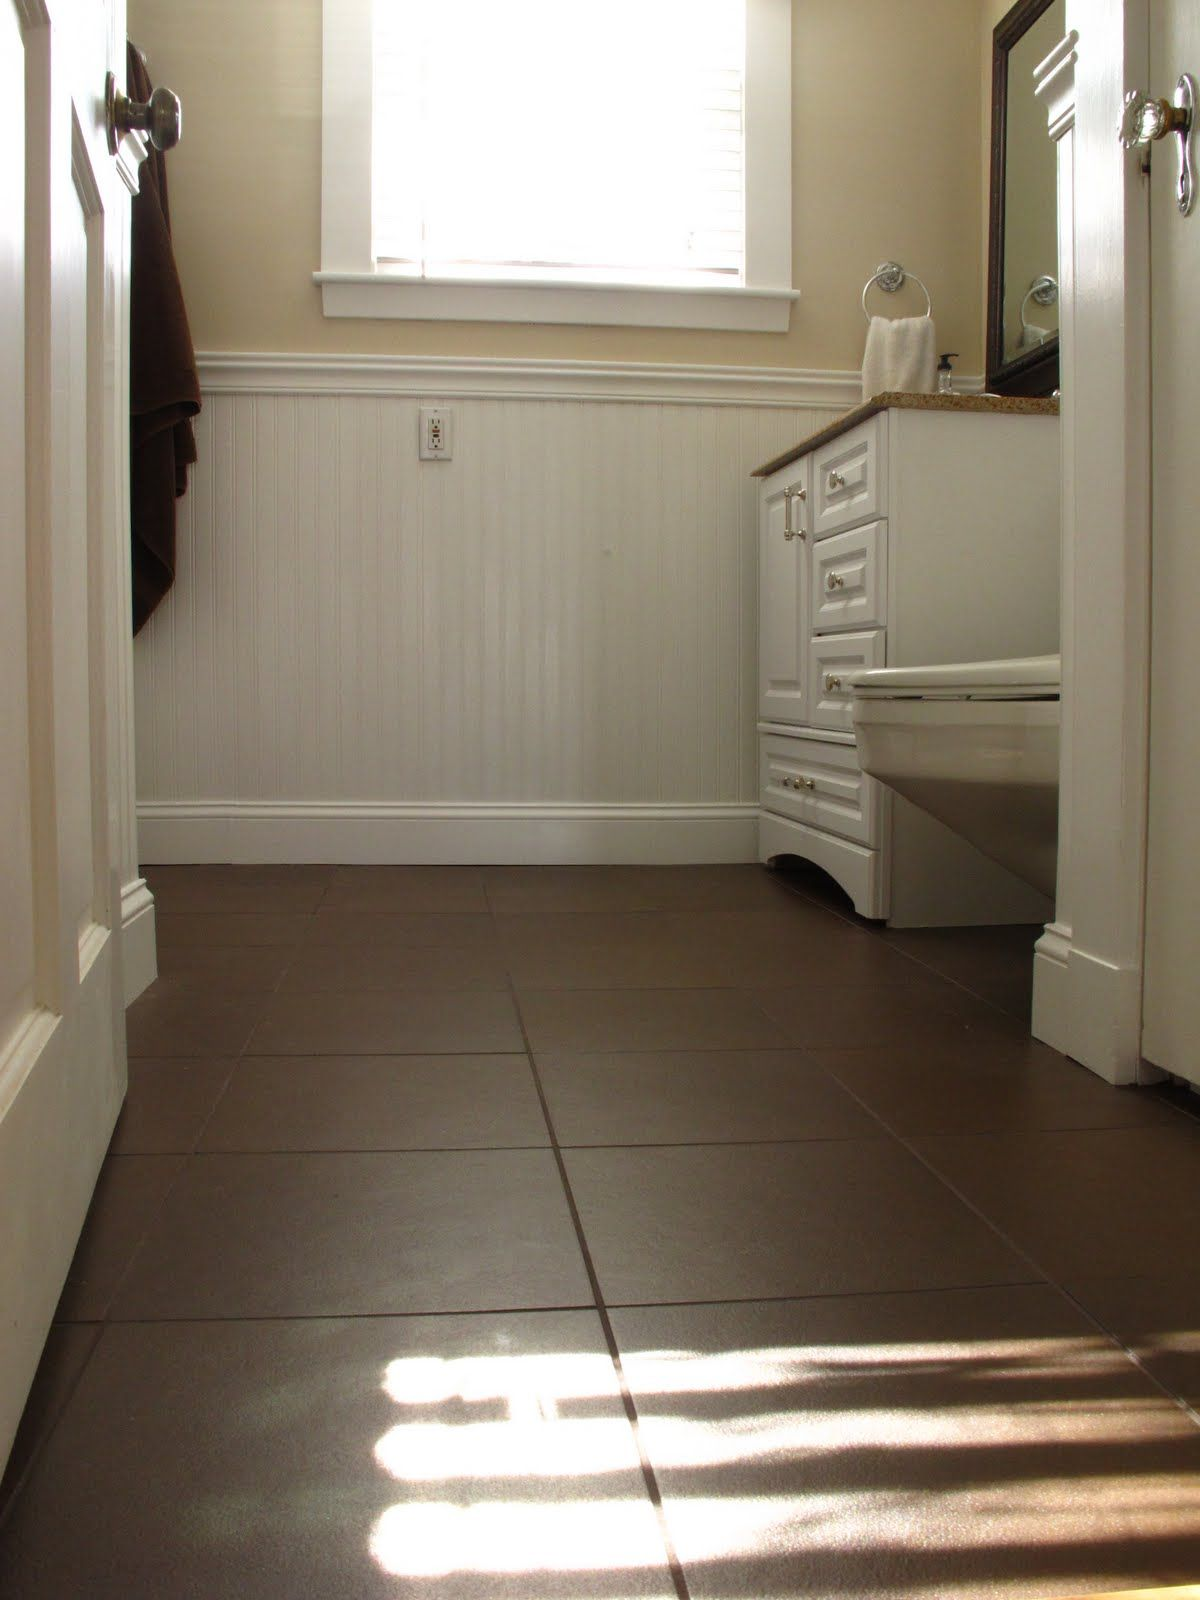 Dark brown tile in bathroom floor white subway tile in tub surround dark brown tile in bathroom floor white subway tile in tub surround dailygadgetfo Image collections